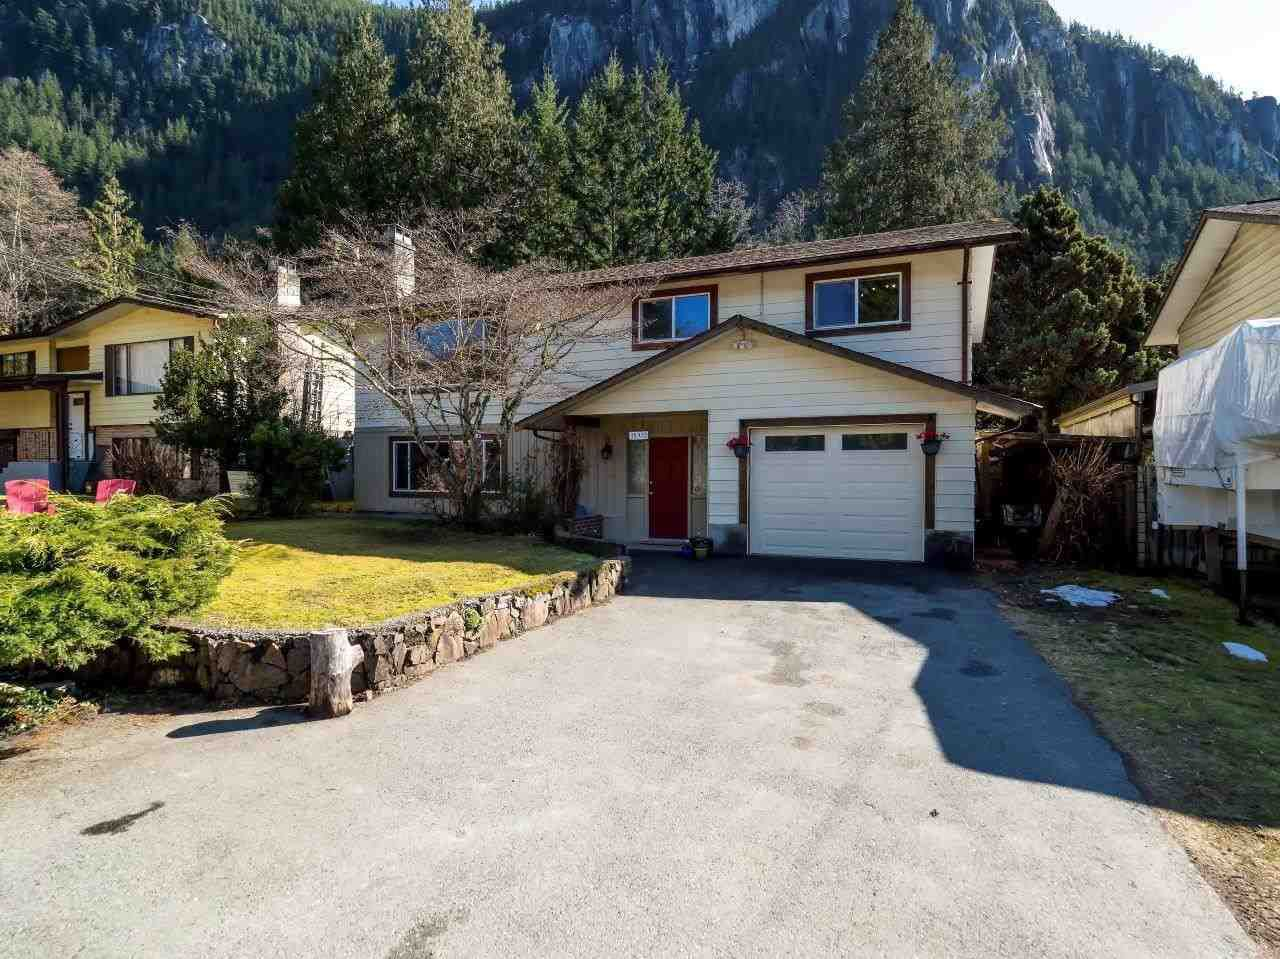 Main Photo: 38412 HEMLOCK Avenue in Squamish: Valleycliffe House for sale : MLS®# R2246593